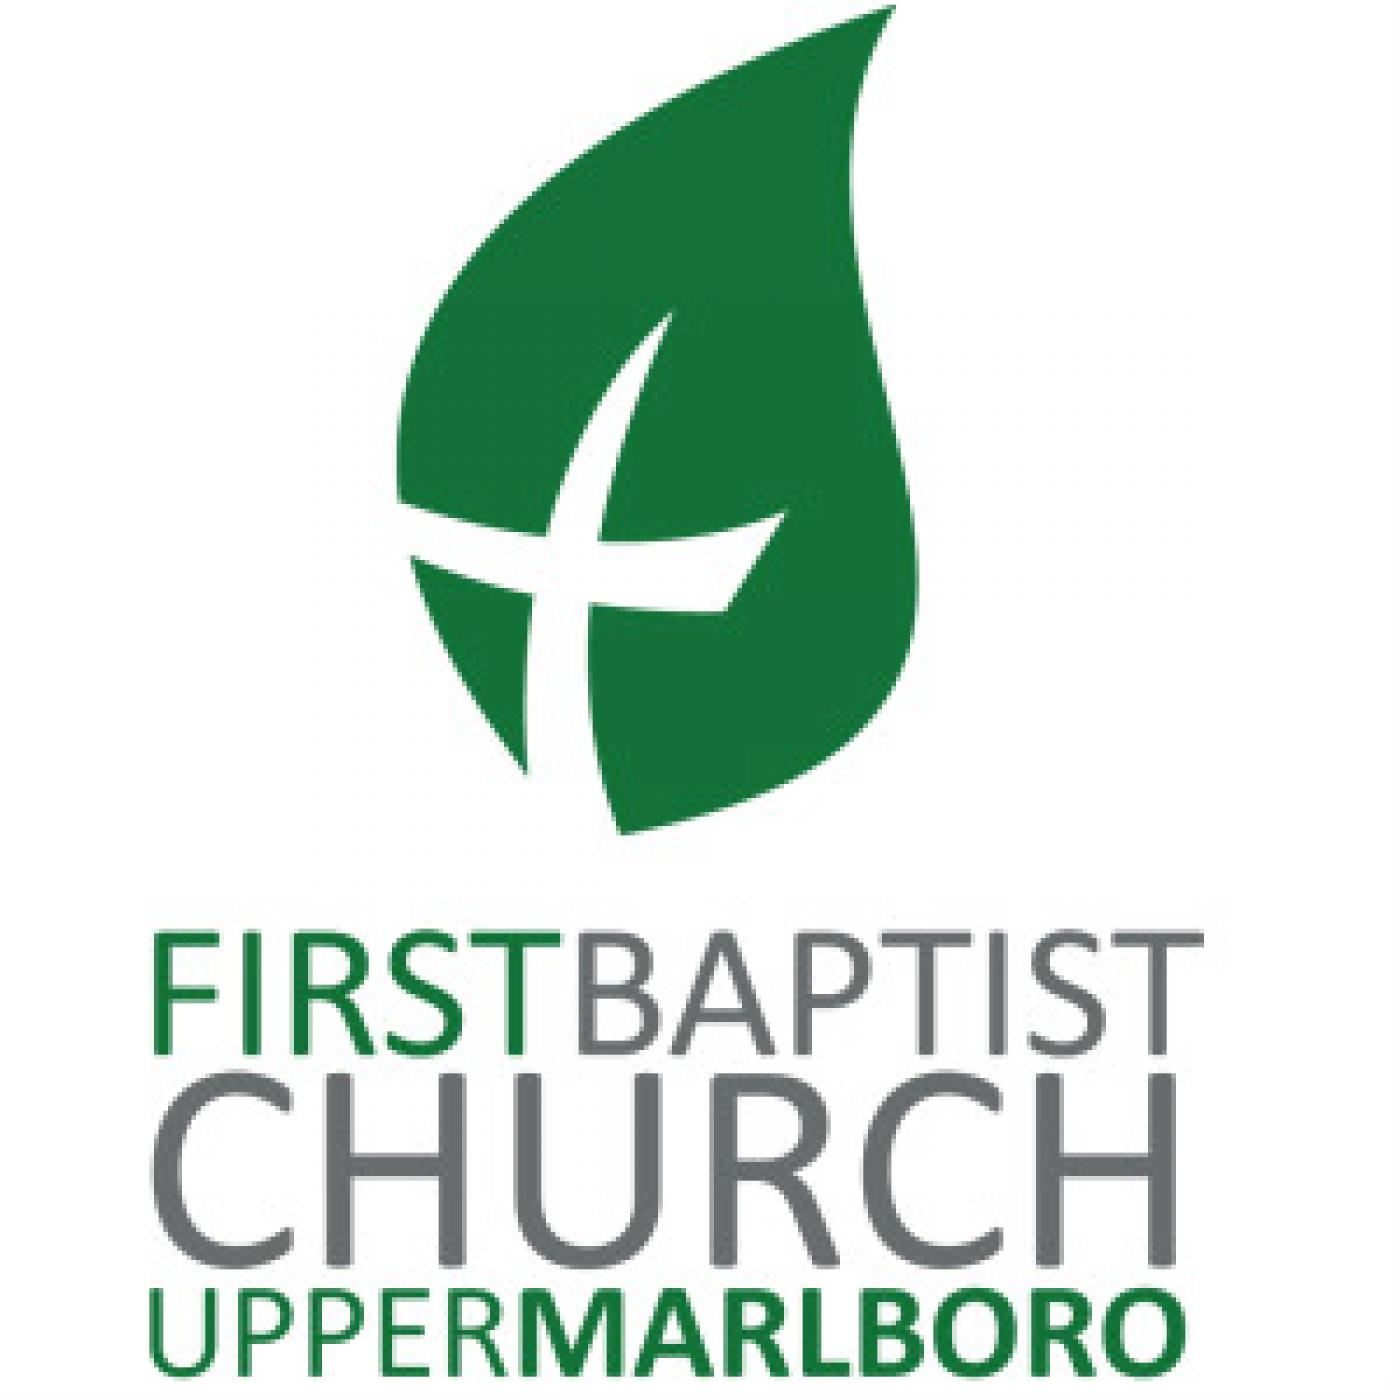 First Baptist Church of Upper Marlboro